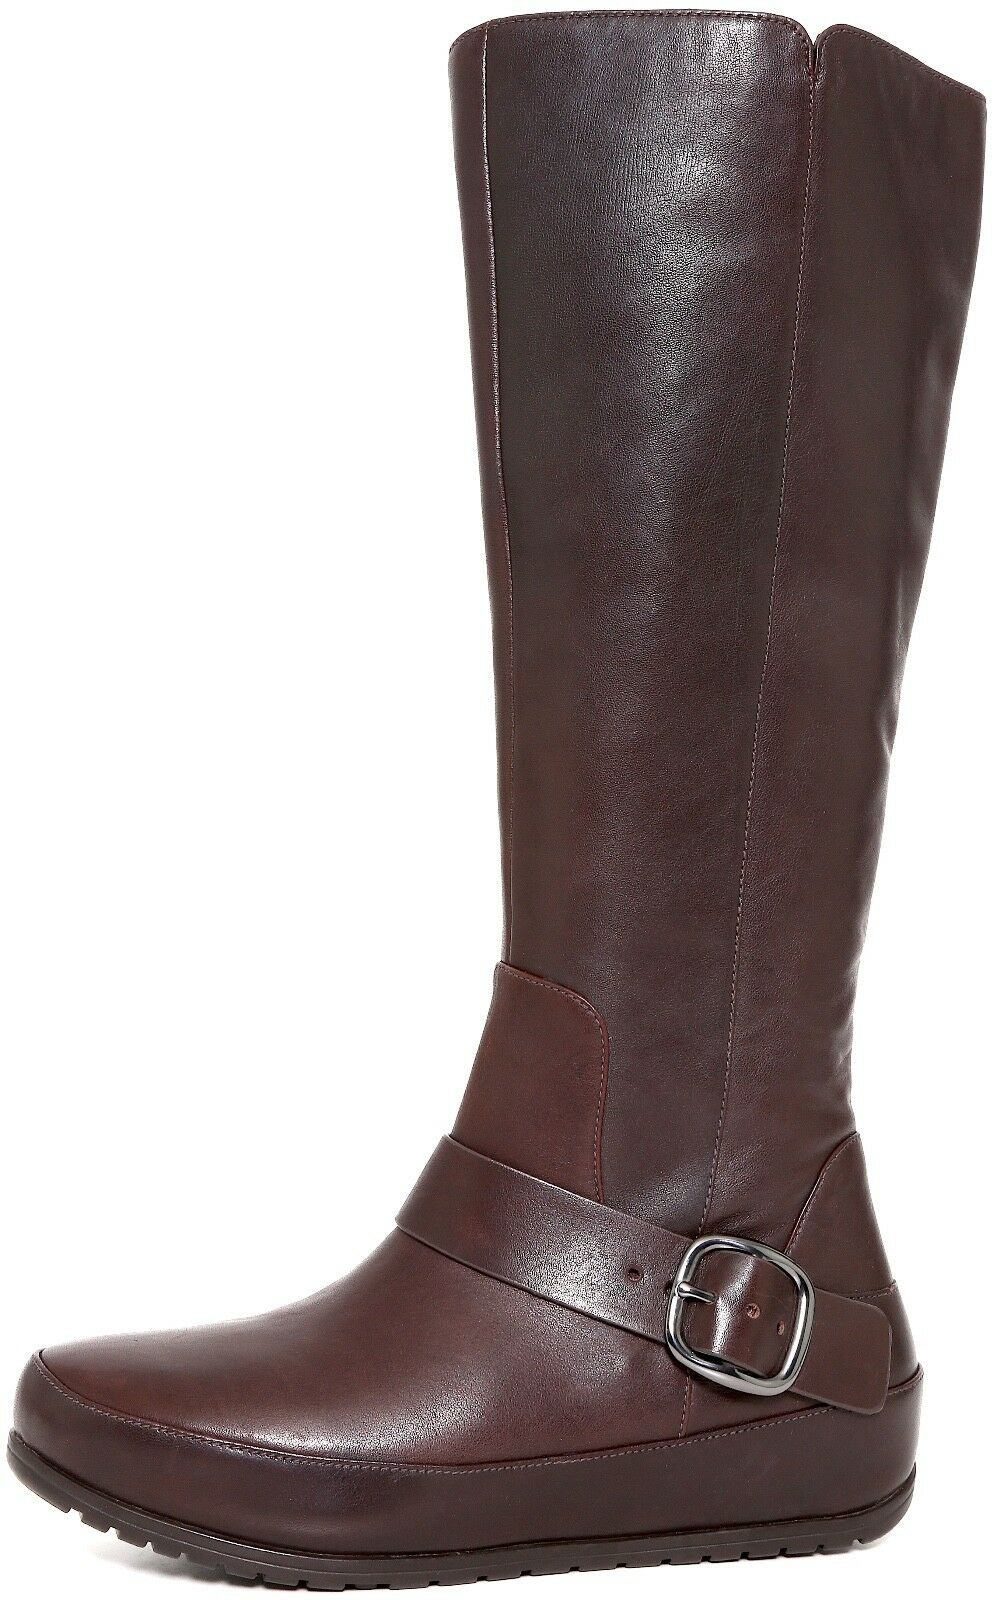 FitFlop 'Duéboot Buckle' Tall Brown Leather Boots 1555* Size 38 EU NEW